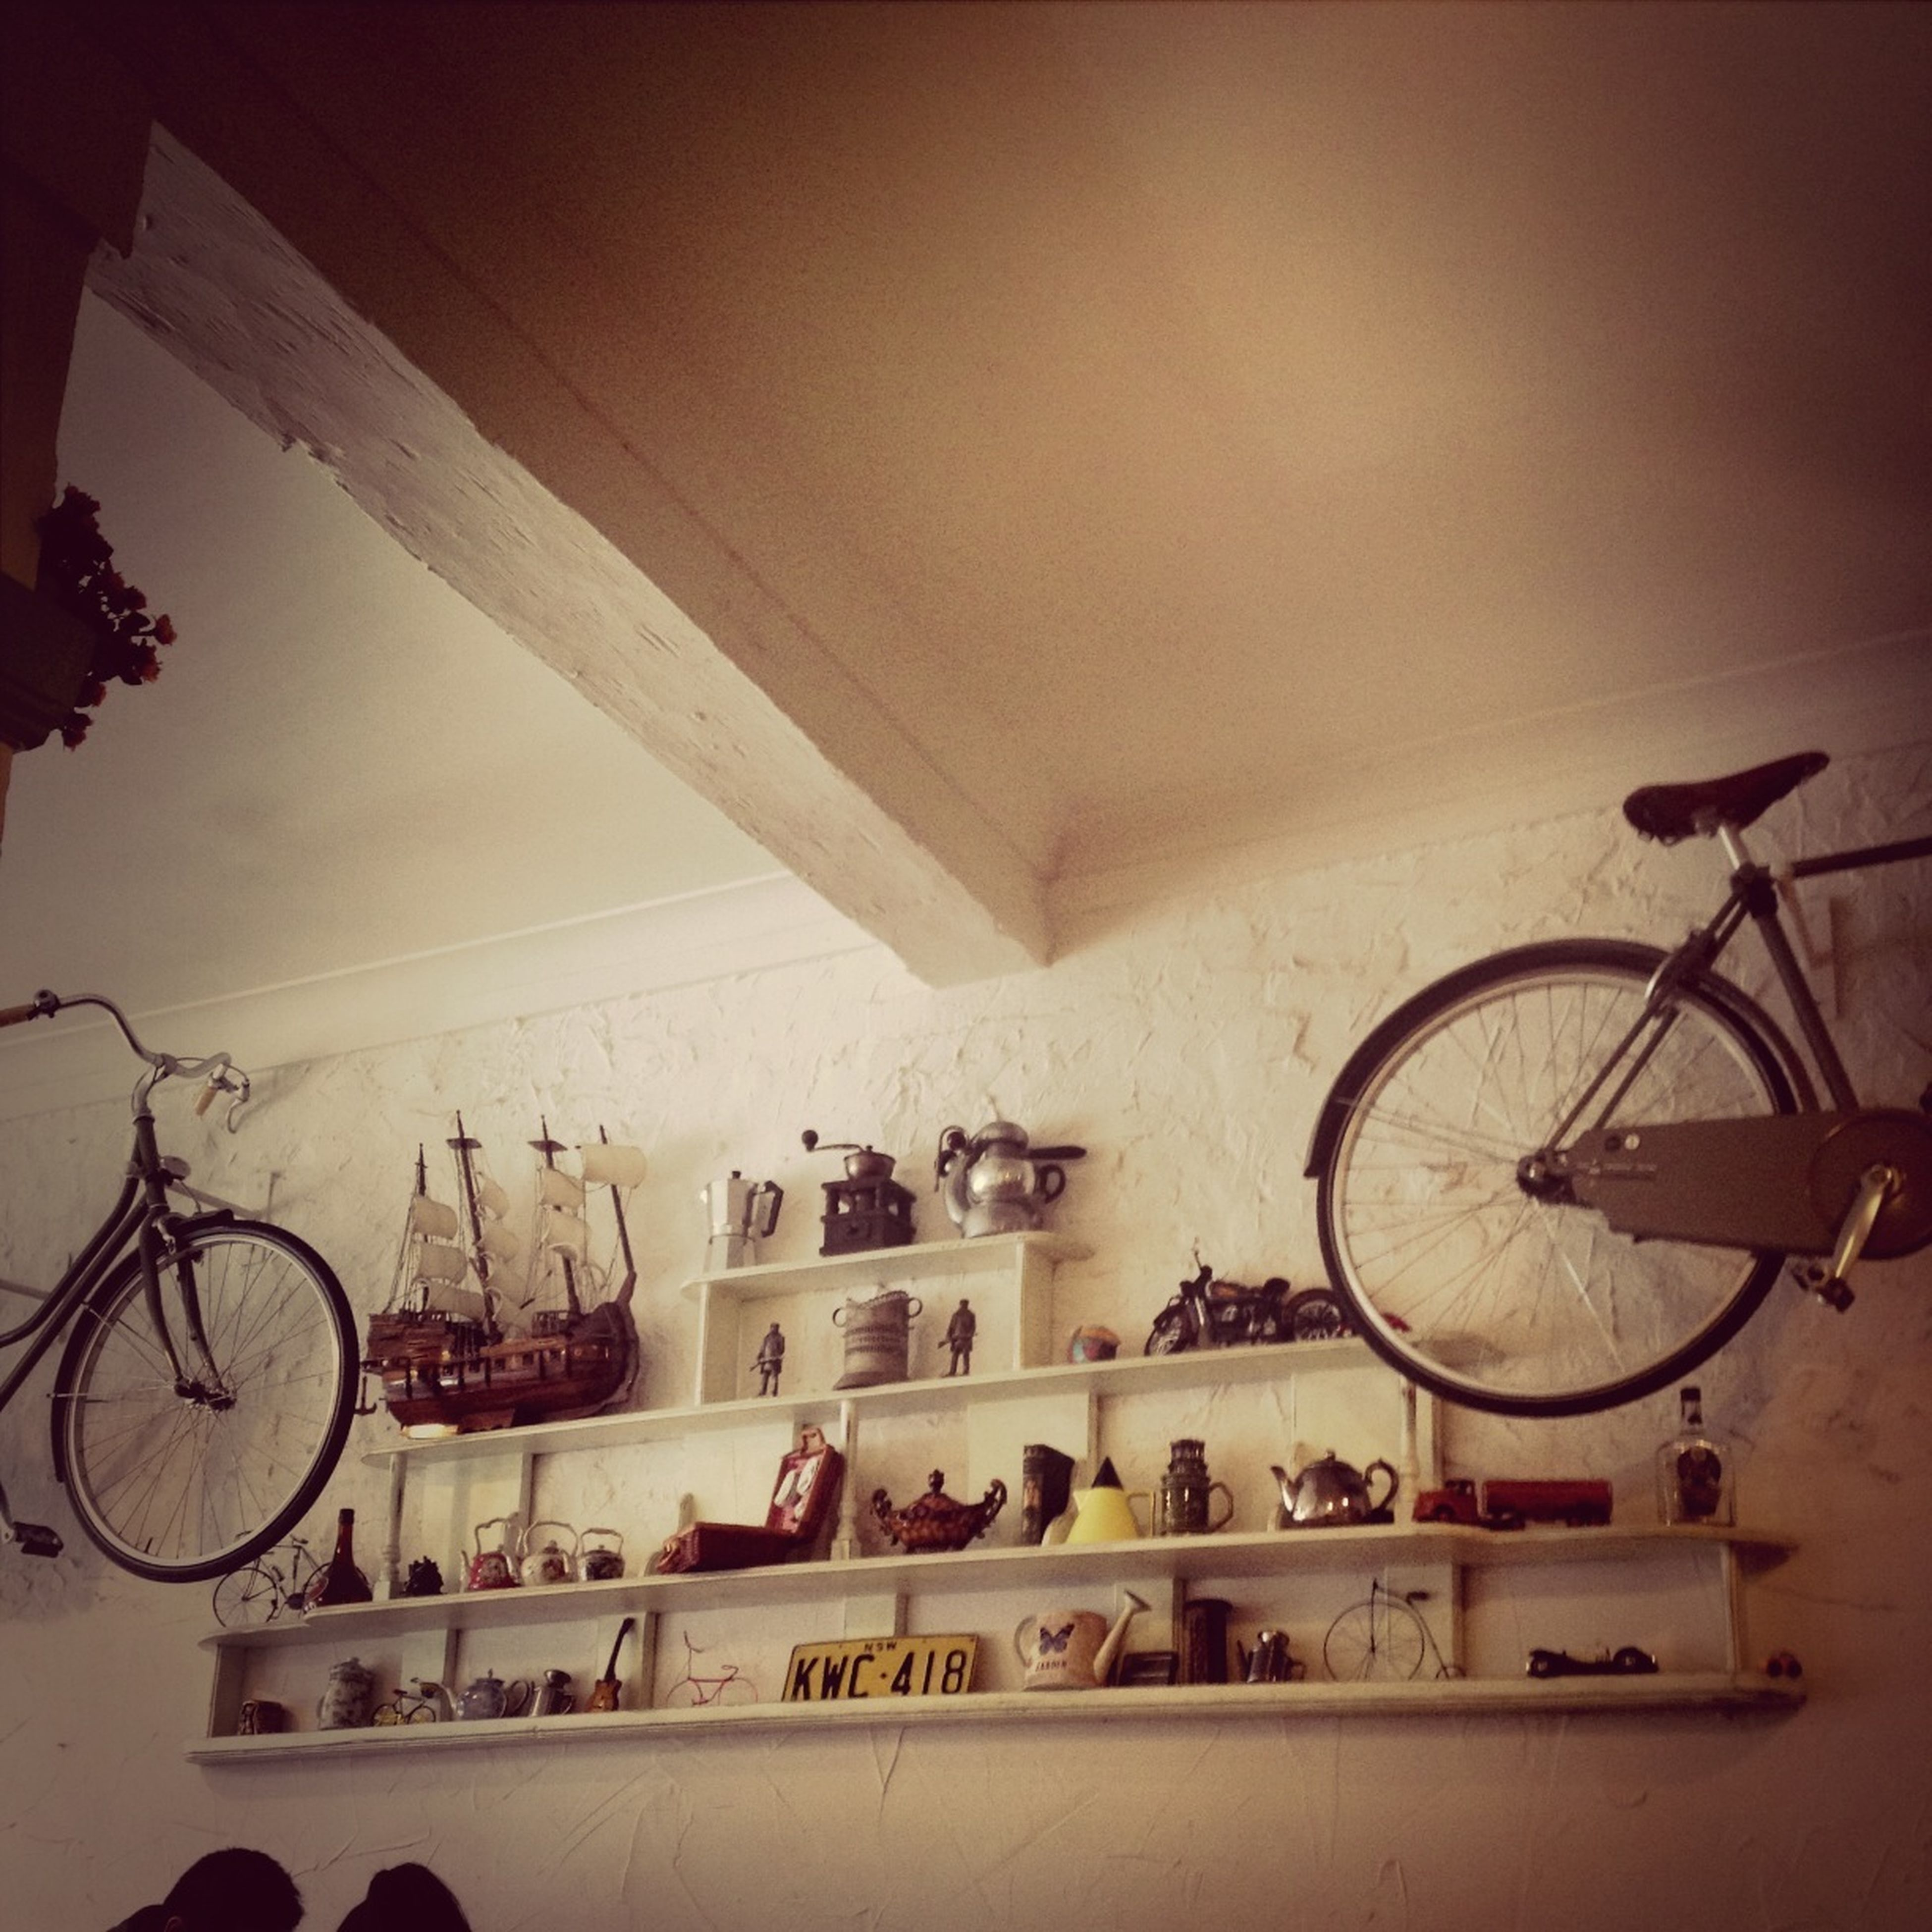 indoors, bicycle, built structure, transportation, architecture, mode of transport, wheel, land vehicle, stationary, wall - building feature, parking, circle, clock, day, no people, wall, low angle view, parked, railing, travel